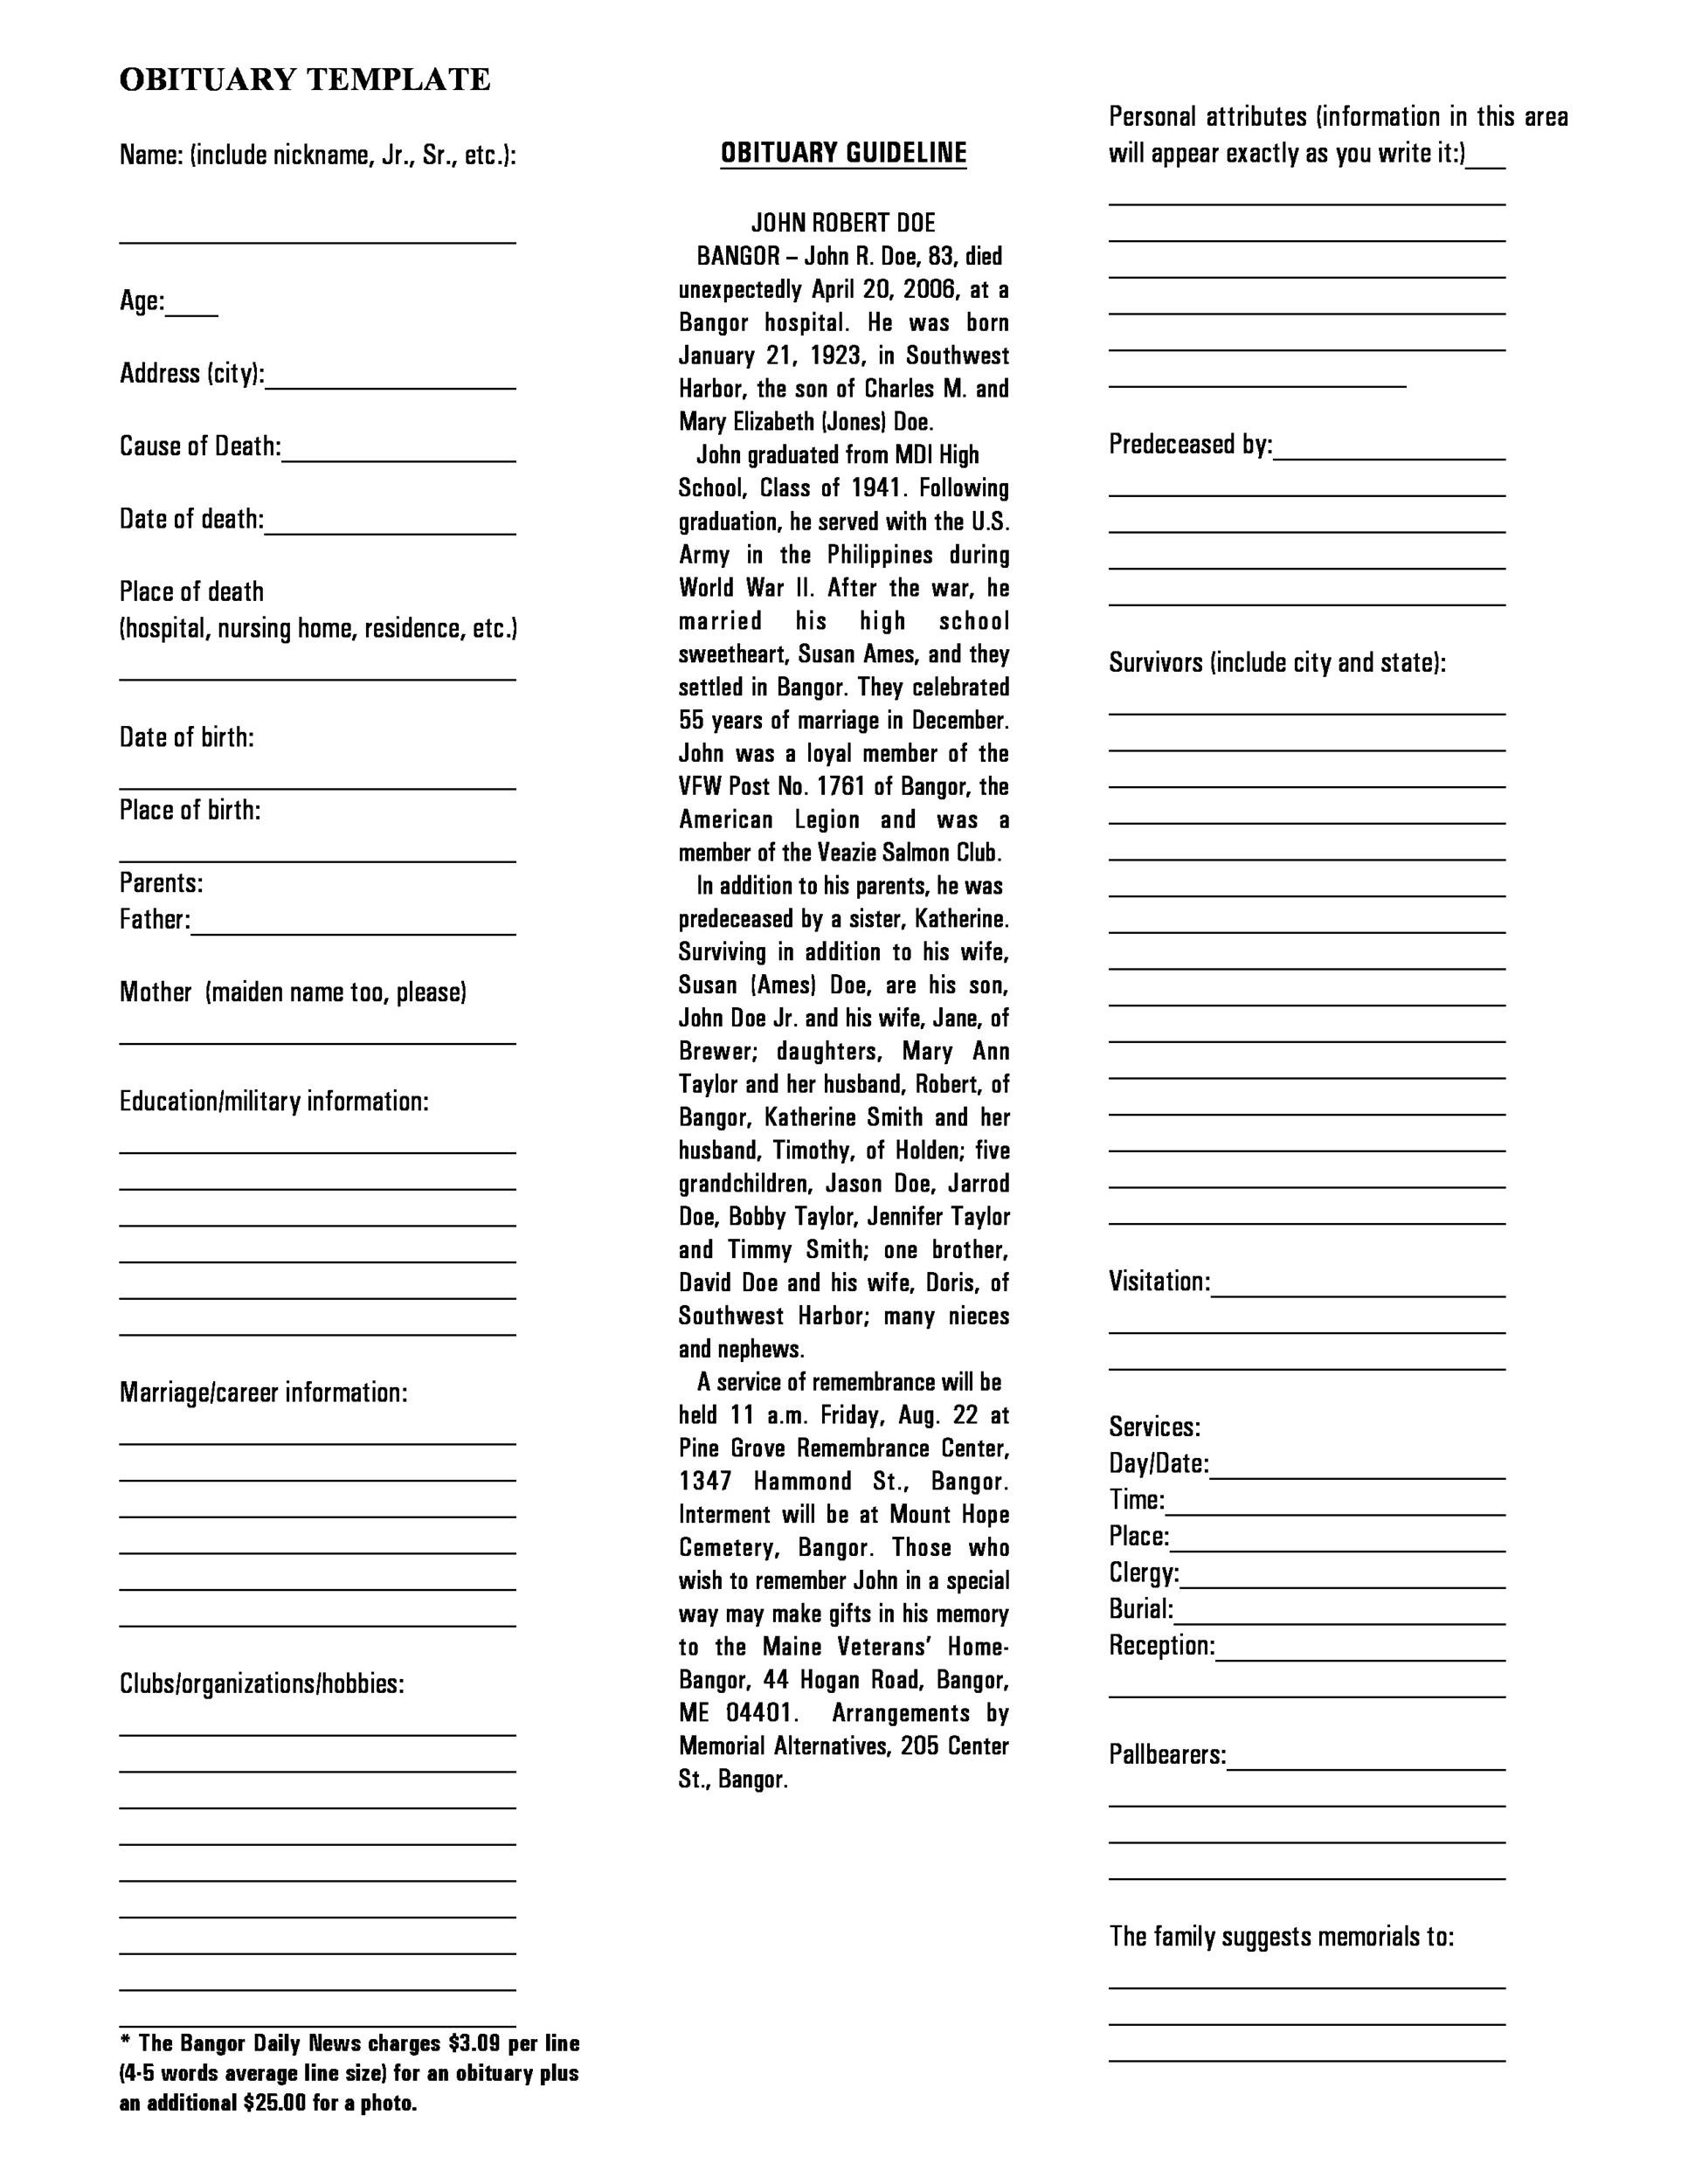 Free Obituary Samples PDF 01